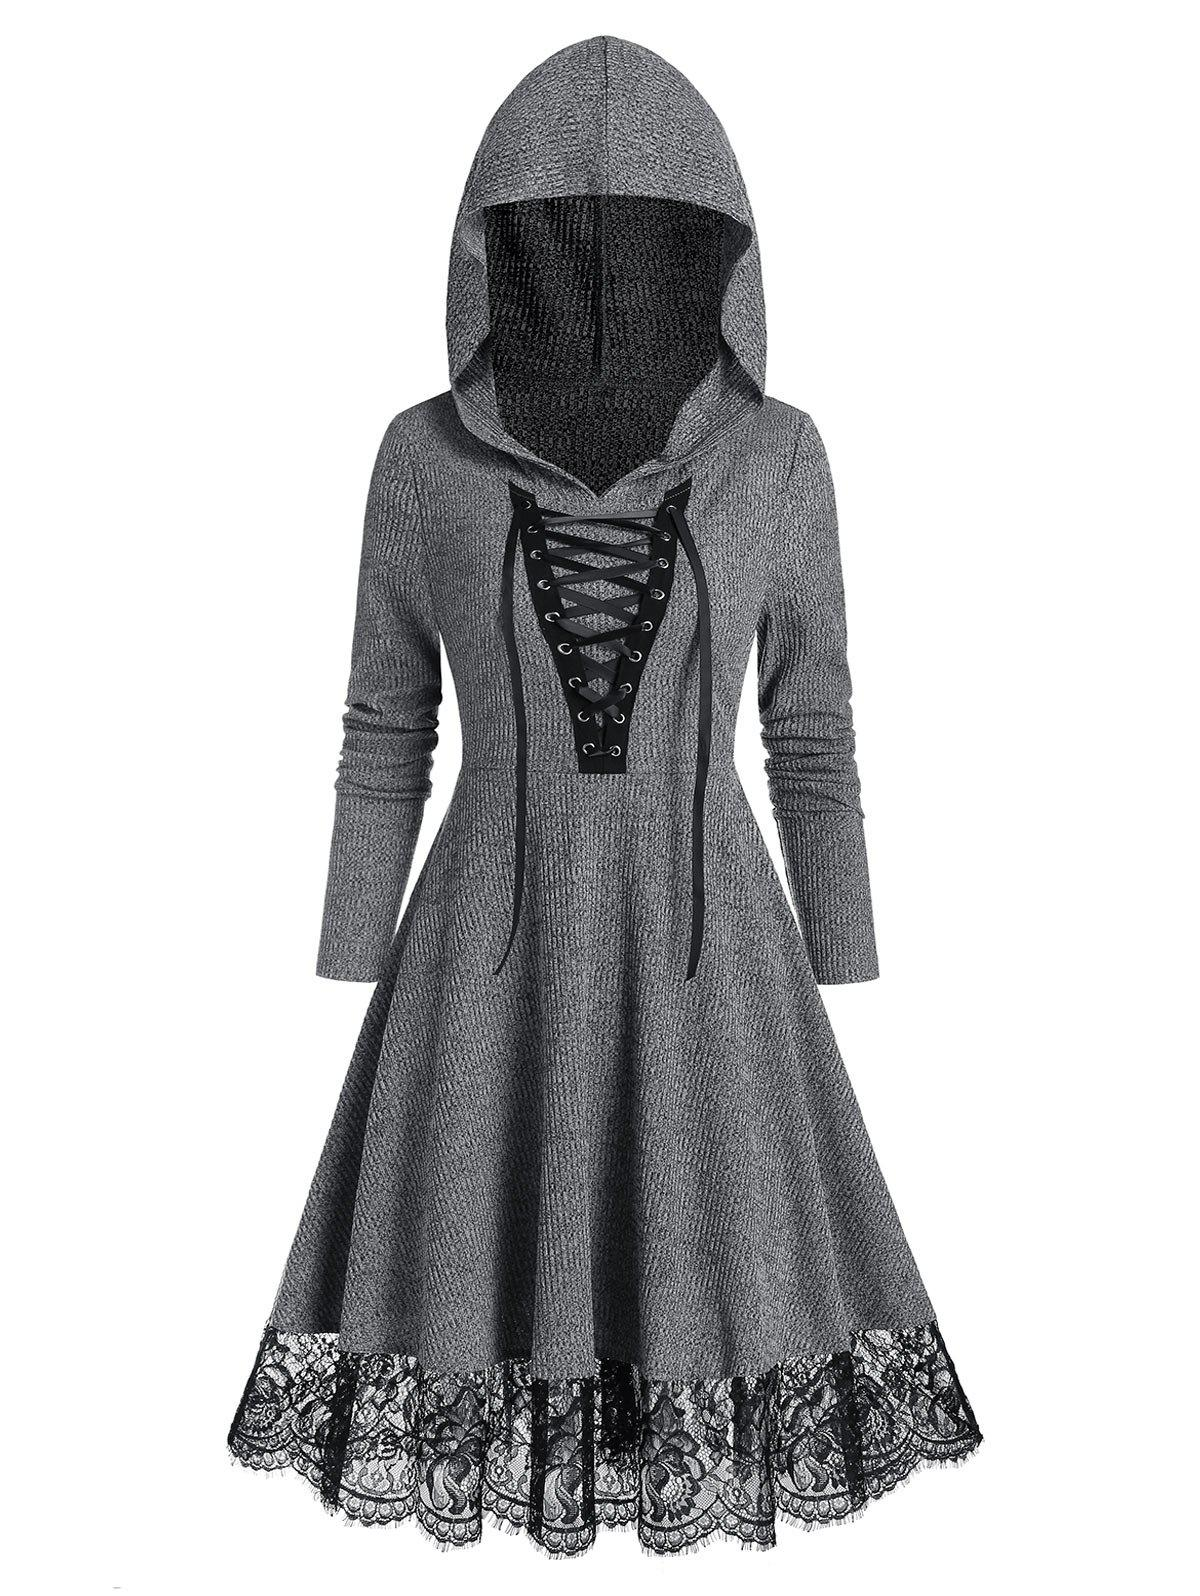 Lace Up Hooded Lace Hem Knitted A Line Dress - LIGHT GRAY L